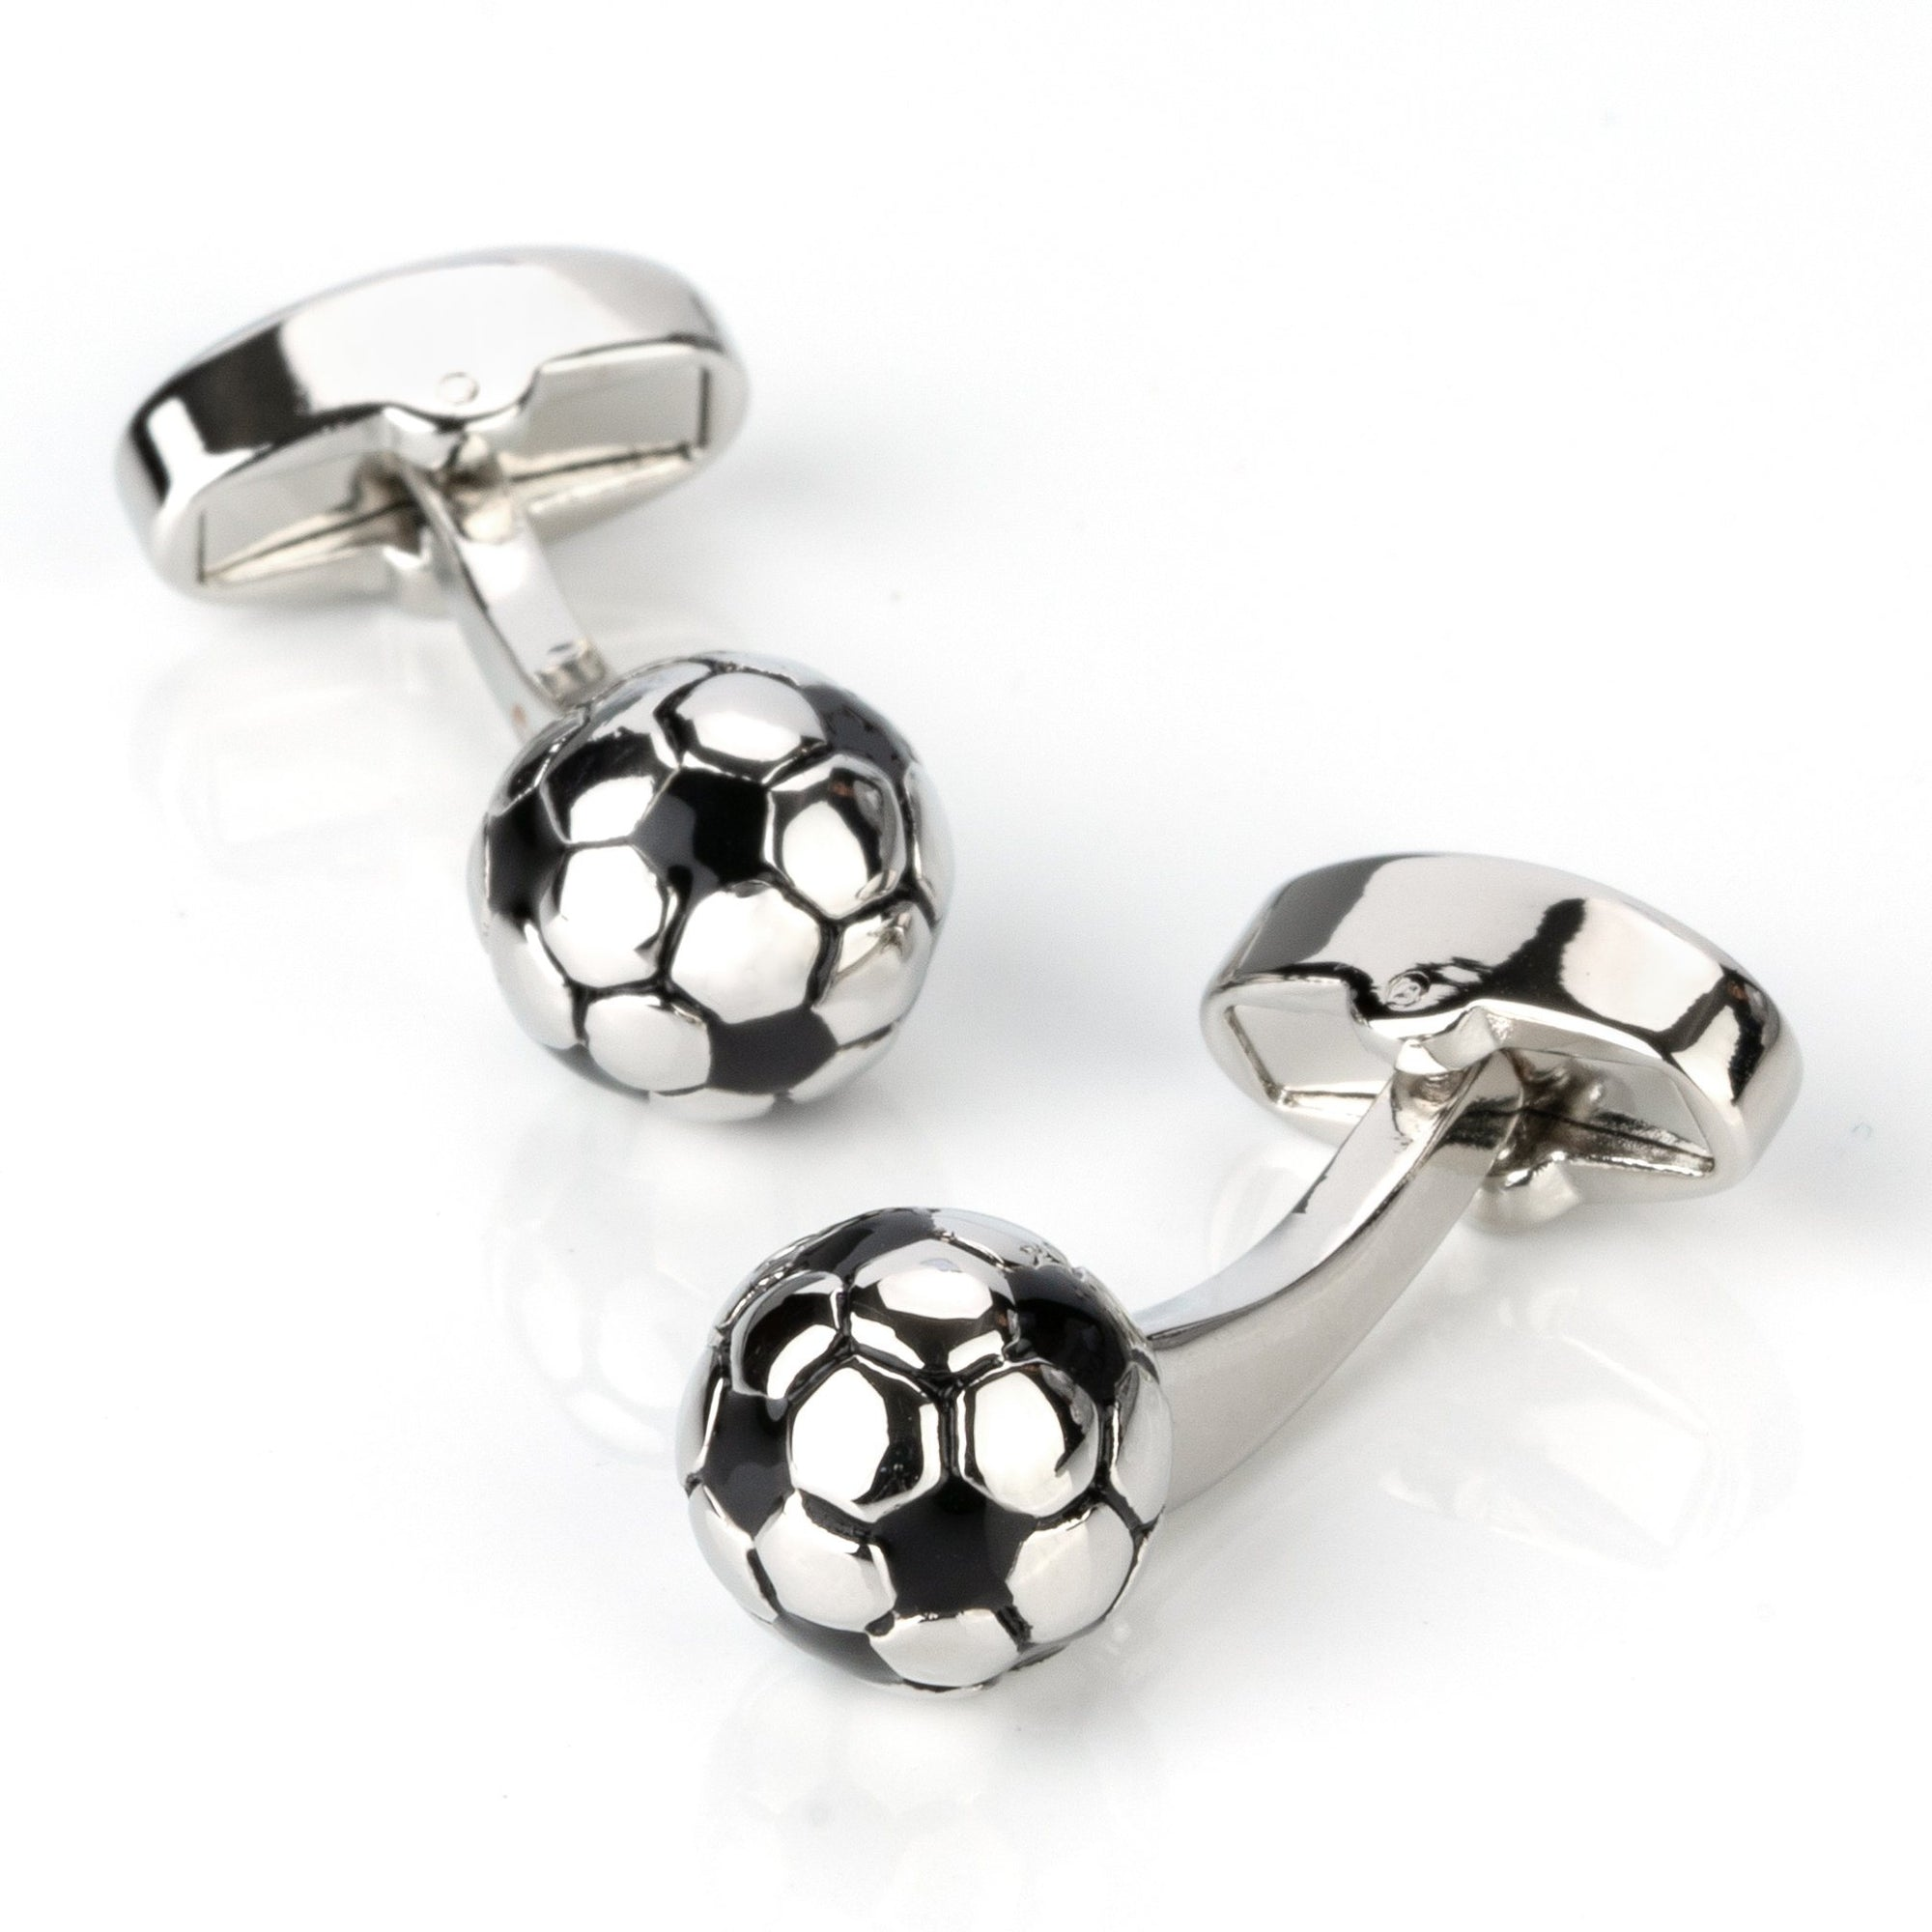 3D Silver and Black Soccer Ball Football Cufflinks, Novelty Cufflinks, Cuffed.com.au, CL4279, Sports, Clinks Australia